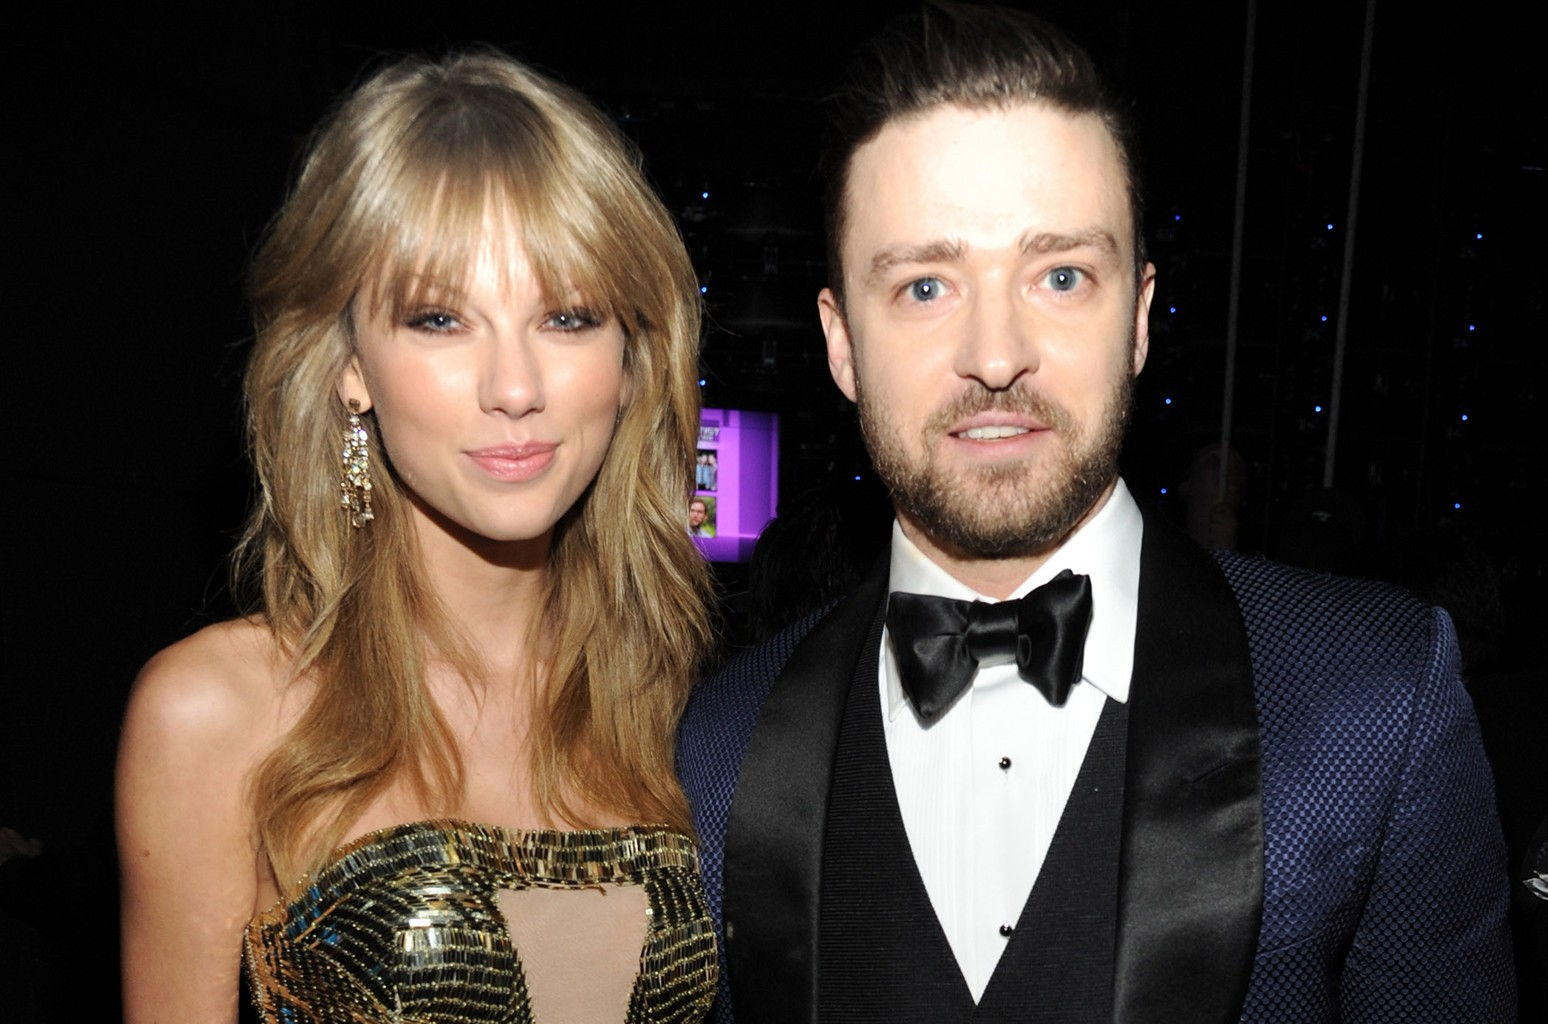 Relive The Moment Justin Timberlake Helped Mend Taylor Swift S Broken Heart Billboard